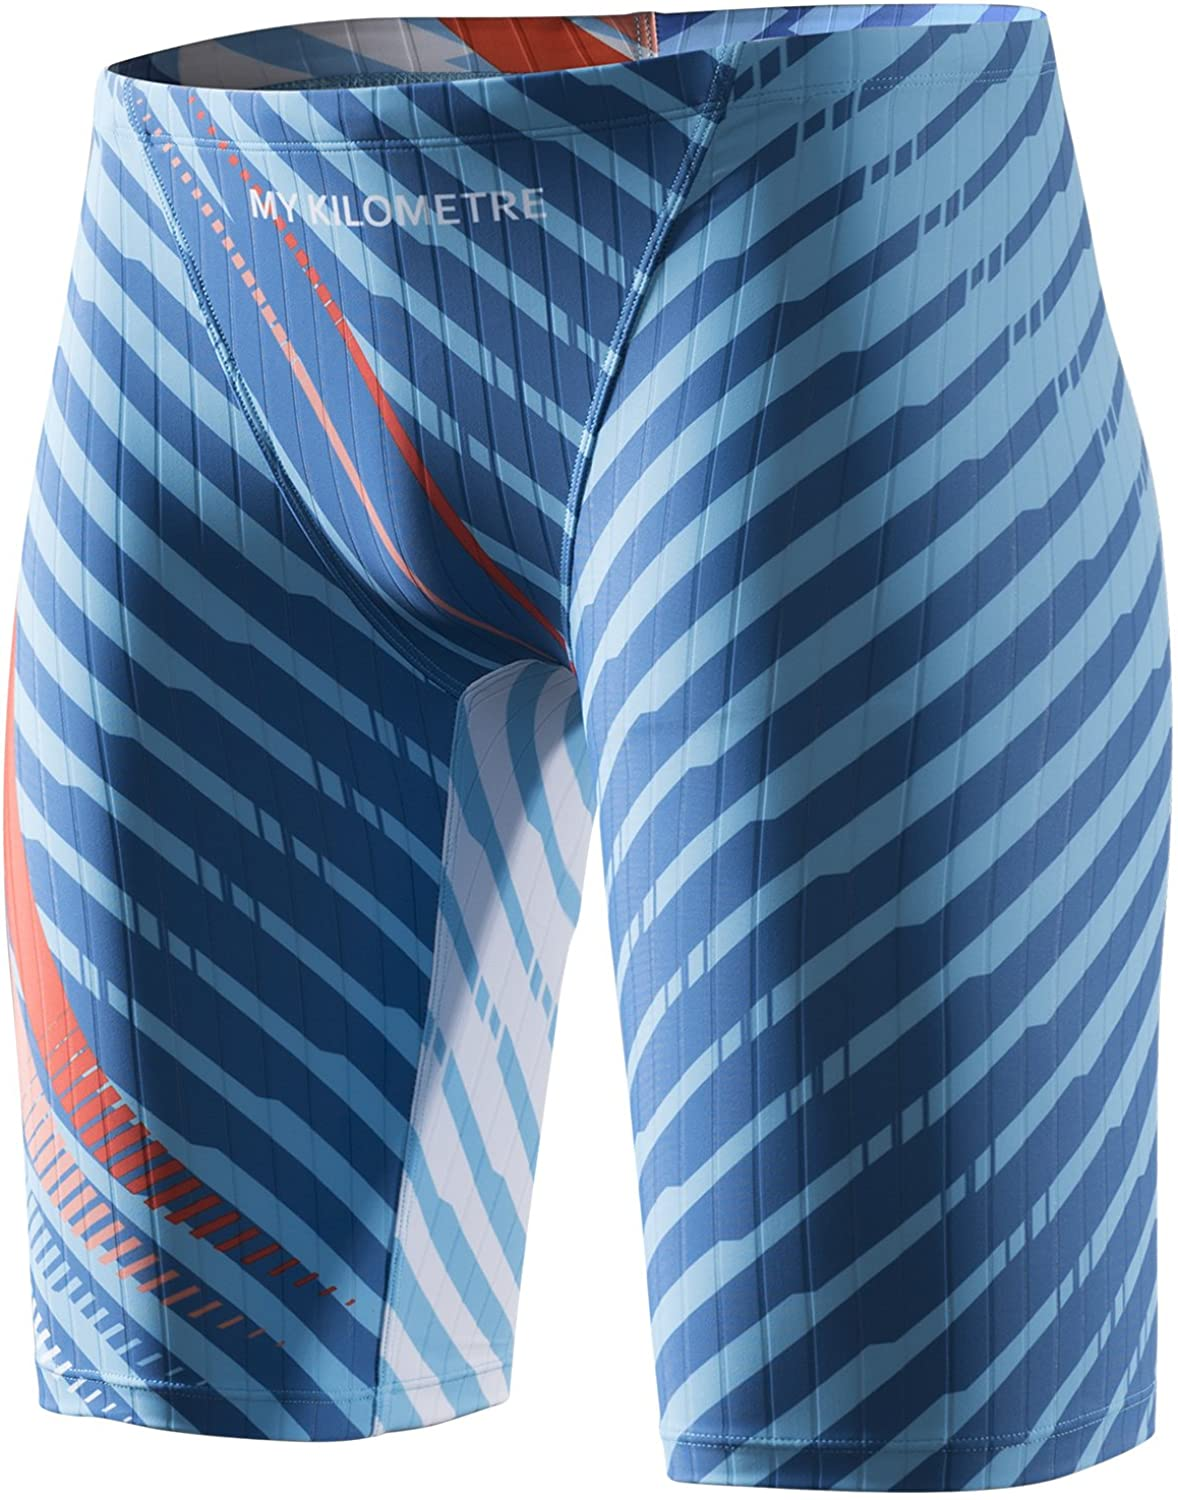 MY KILOMETRE Jammer Swimsuit Mens Jammers Swim Endurance Sale special price L Gorgeous Solid